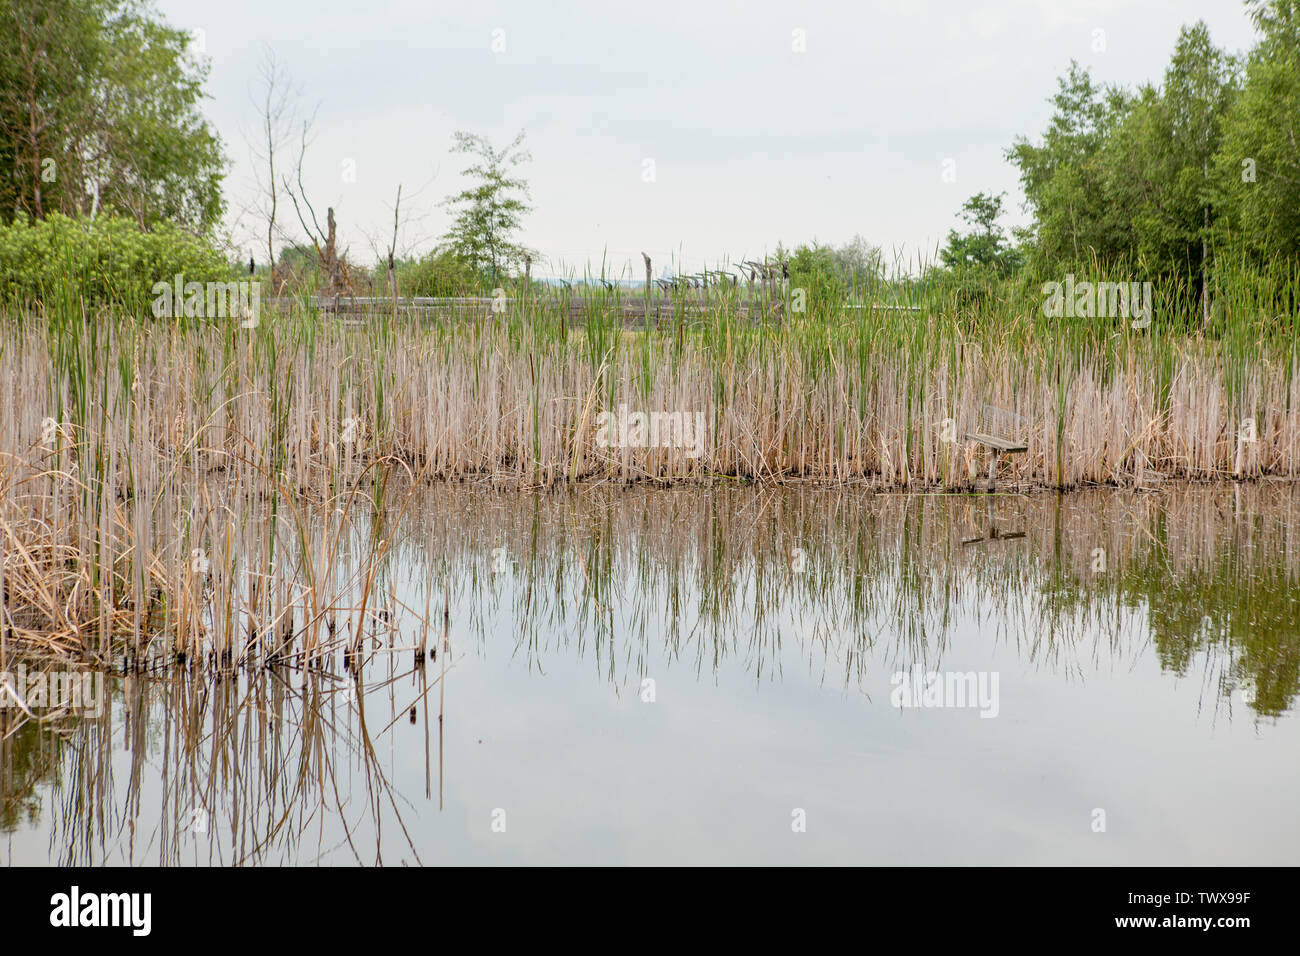 Burnt plants on the shore of a small lake. Dry reeds on the pond. Reeds after the fire. - Stock Image